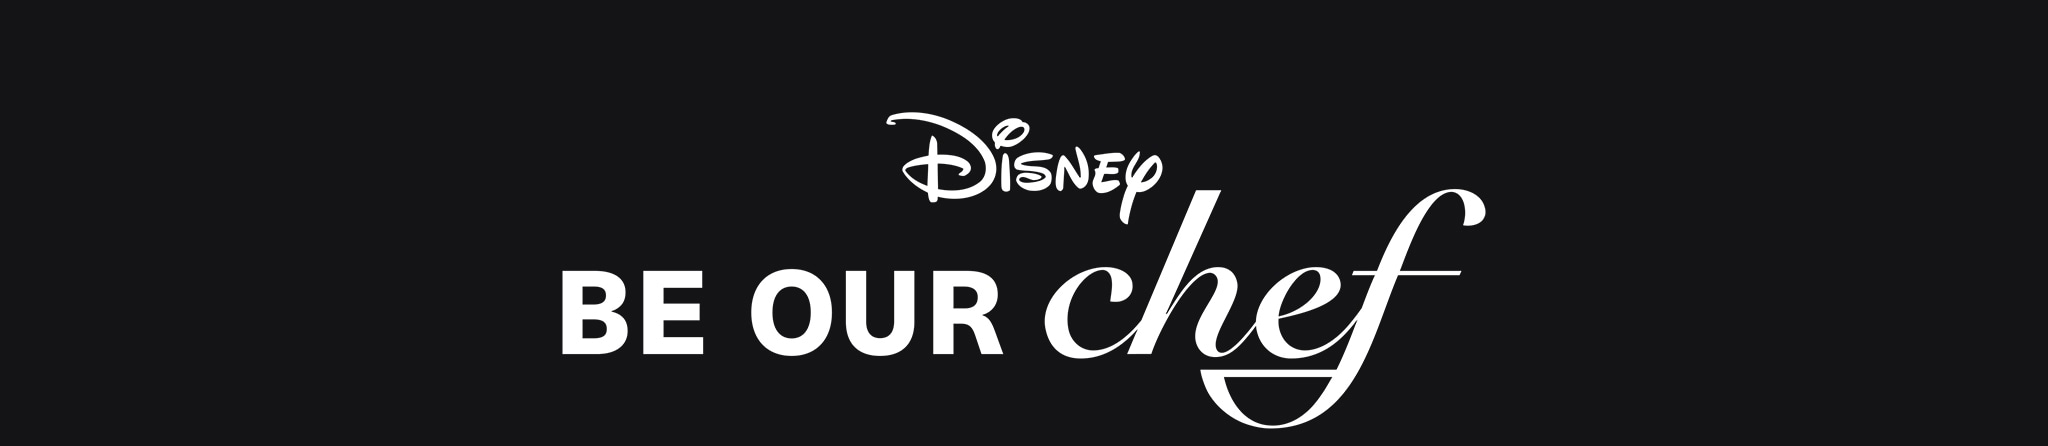 Disney Be Our Chef